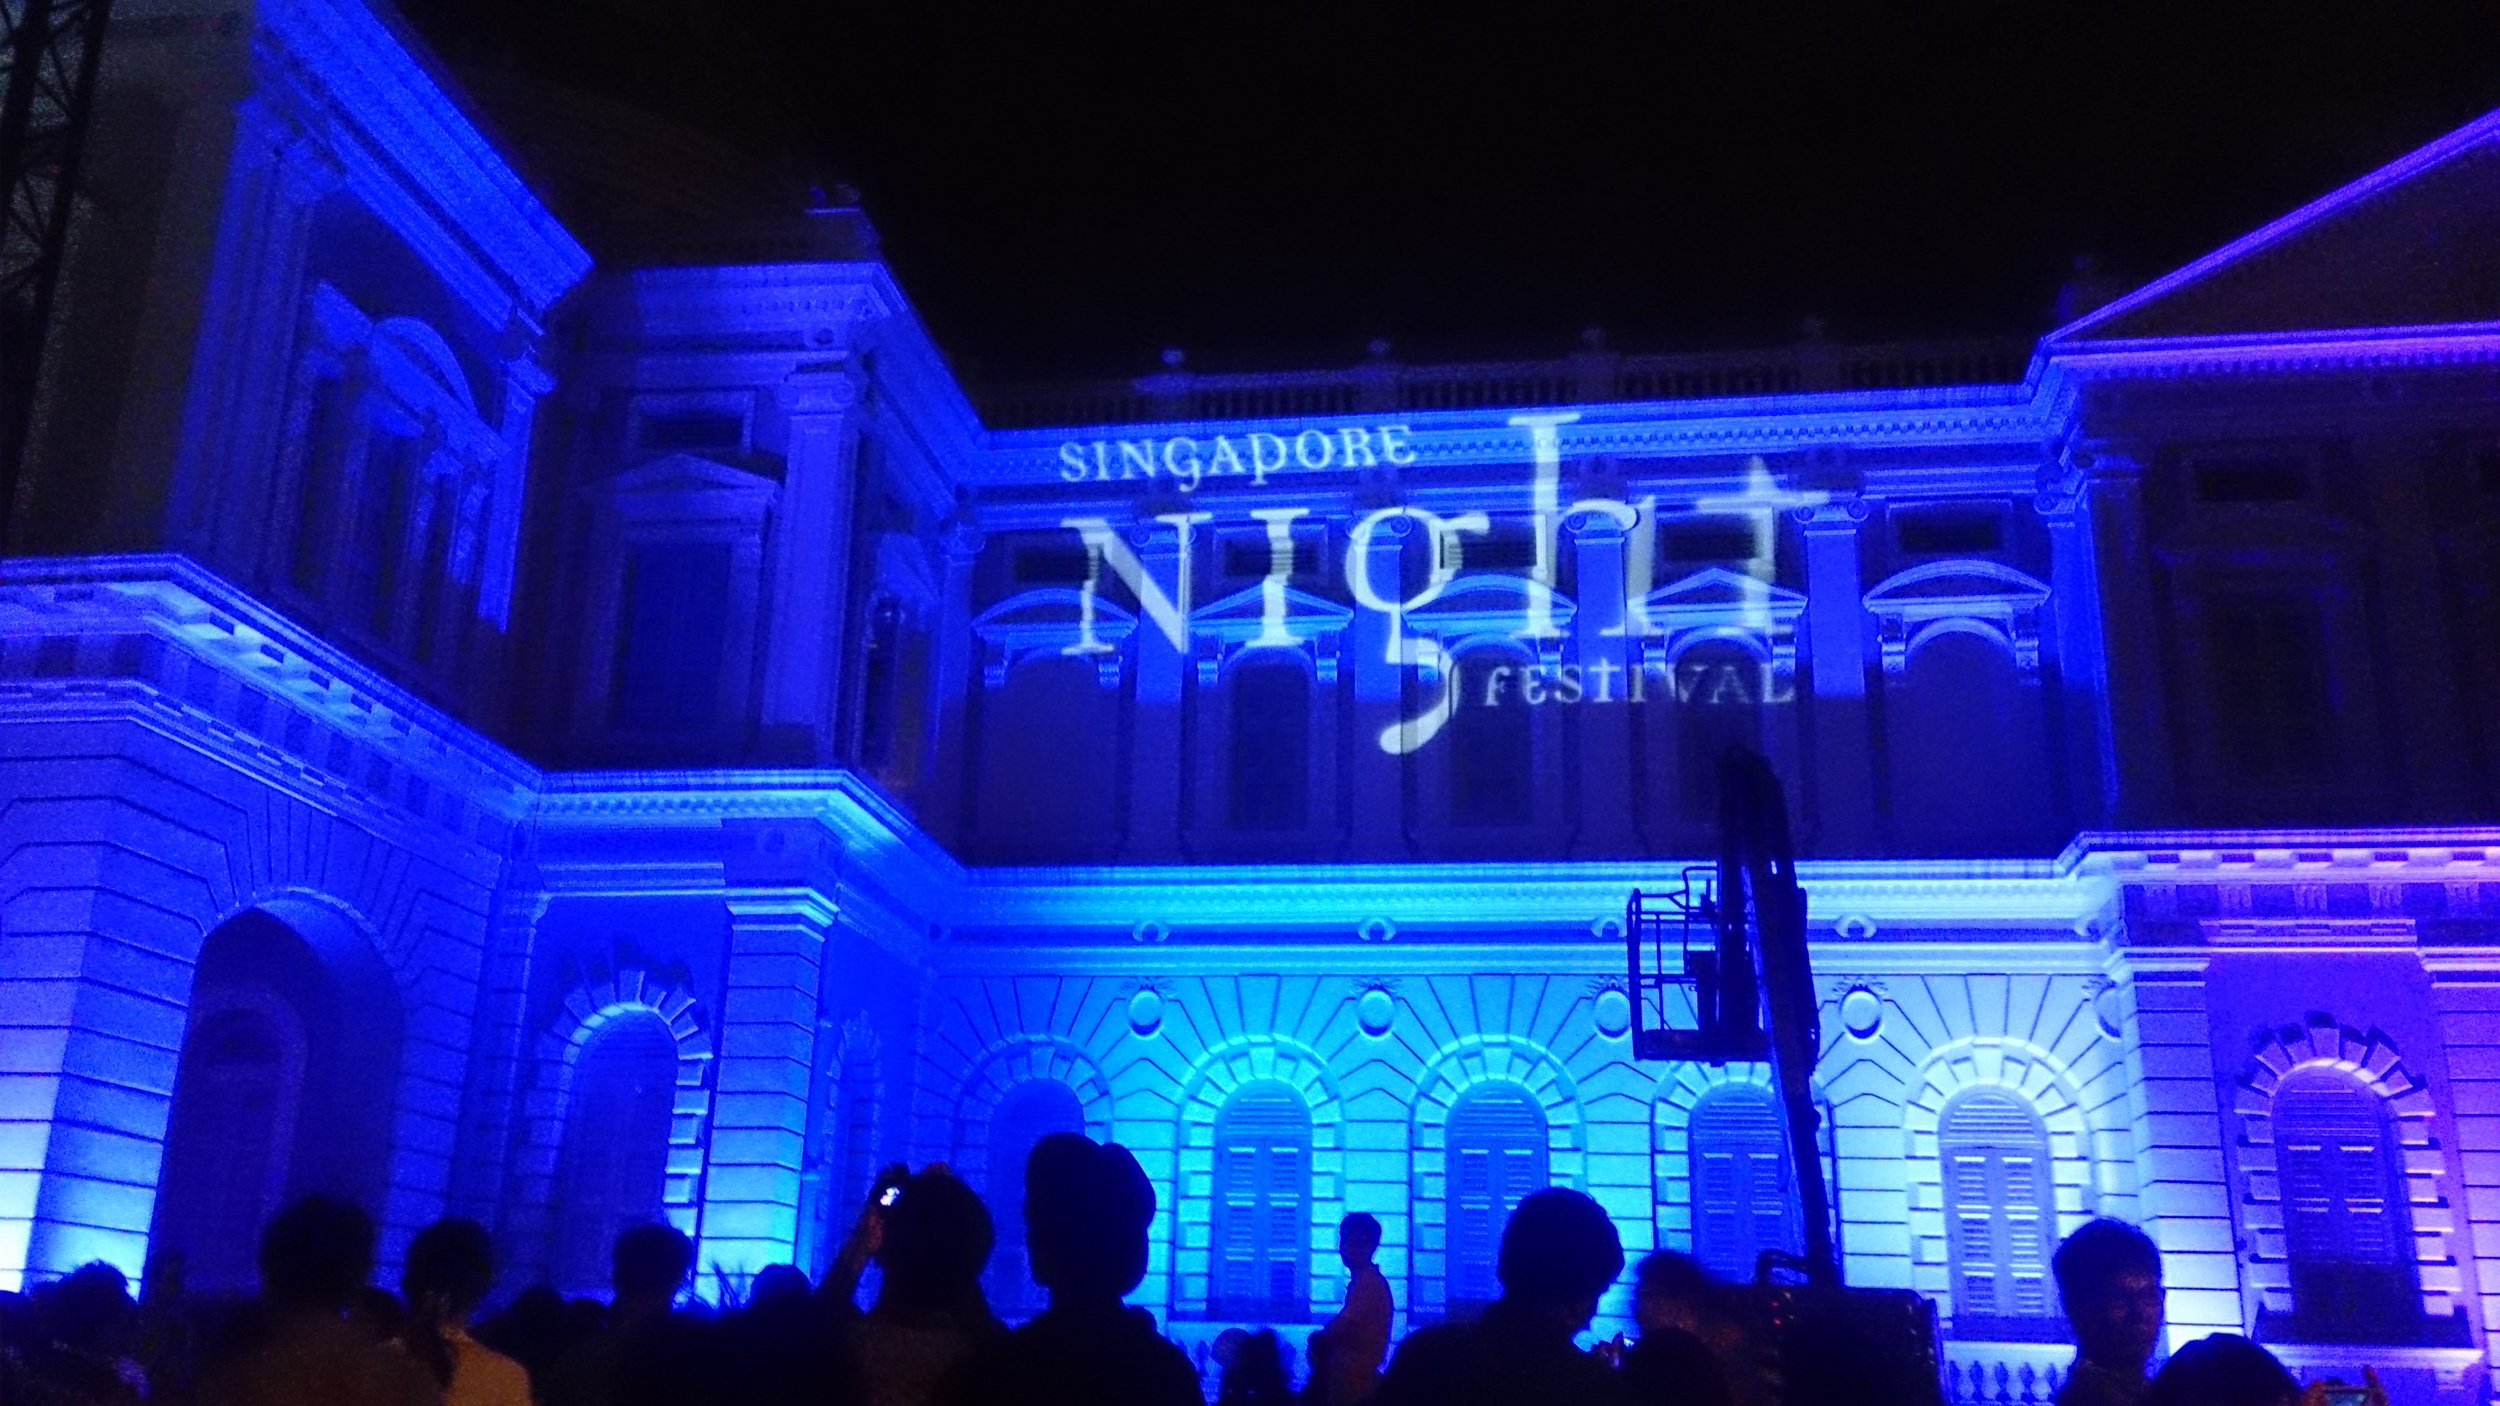 Most Singapore Night Festival events are free to the public.